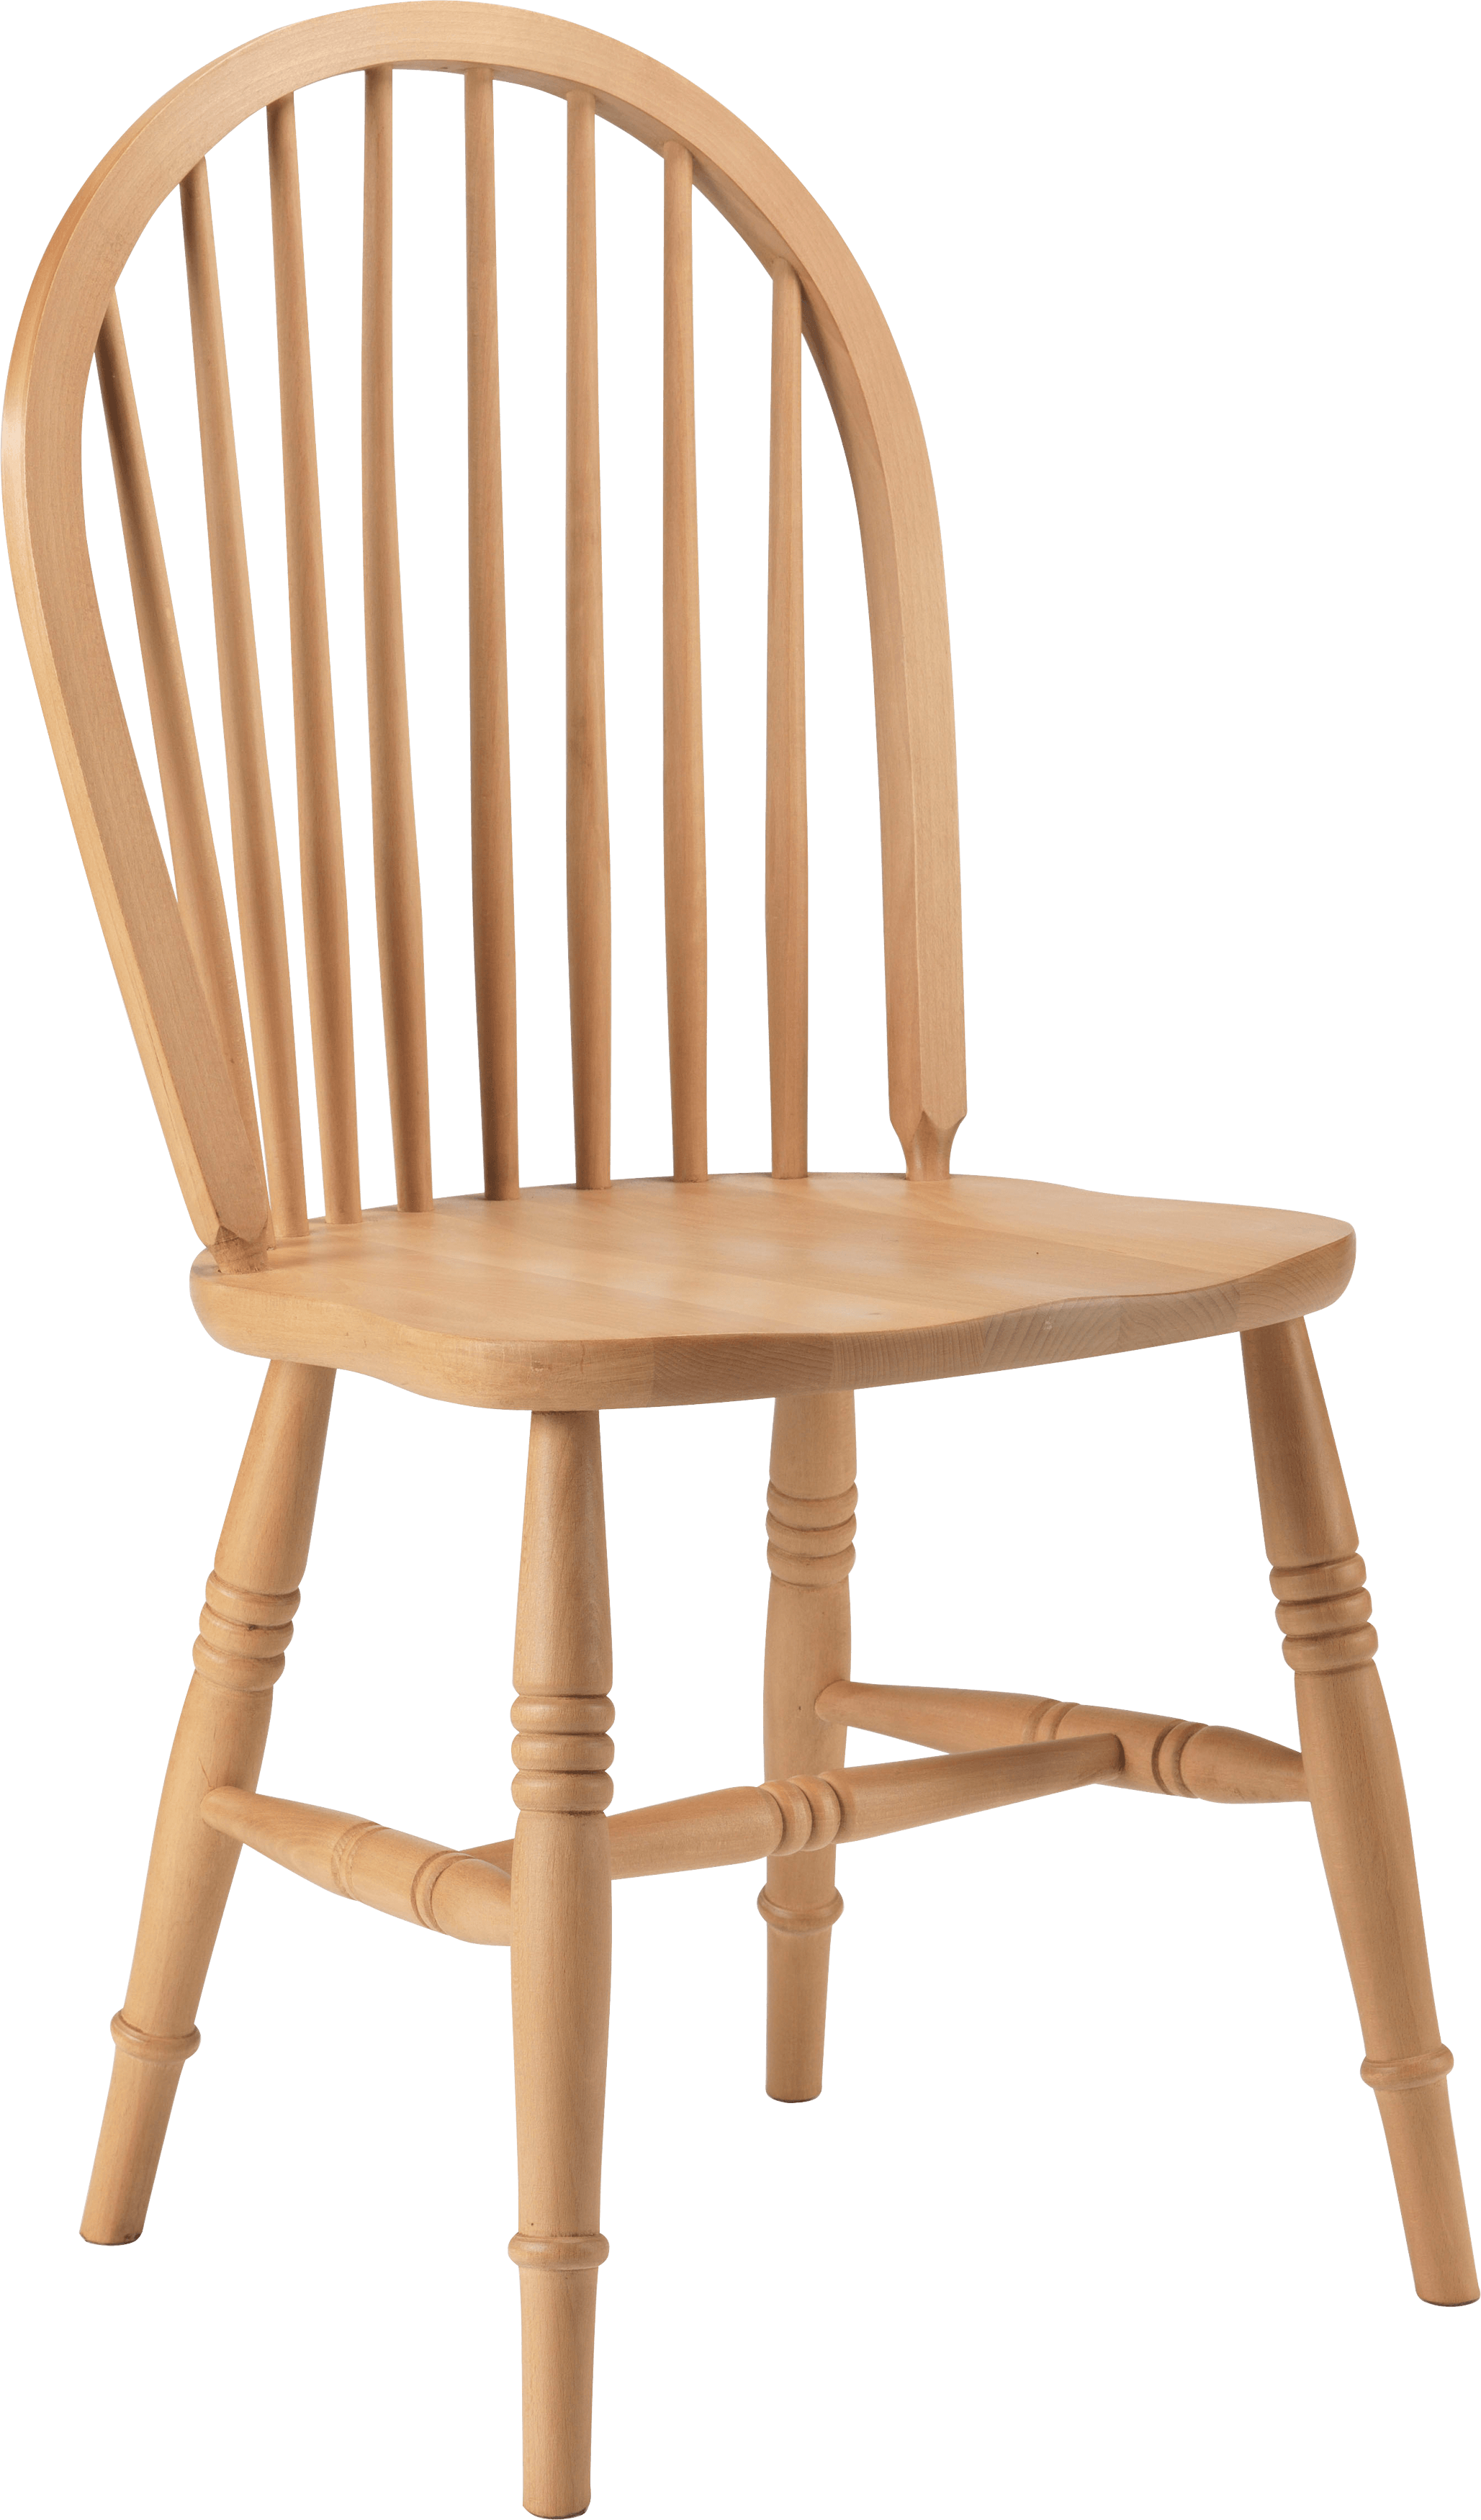 Chair PNG - 3211